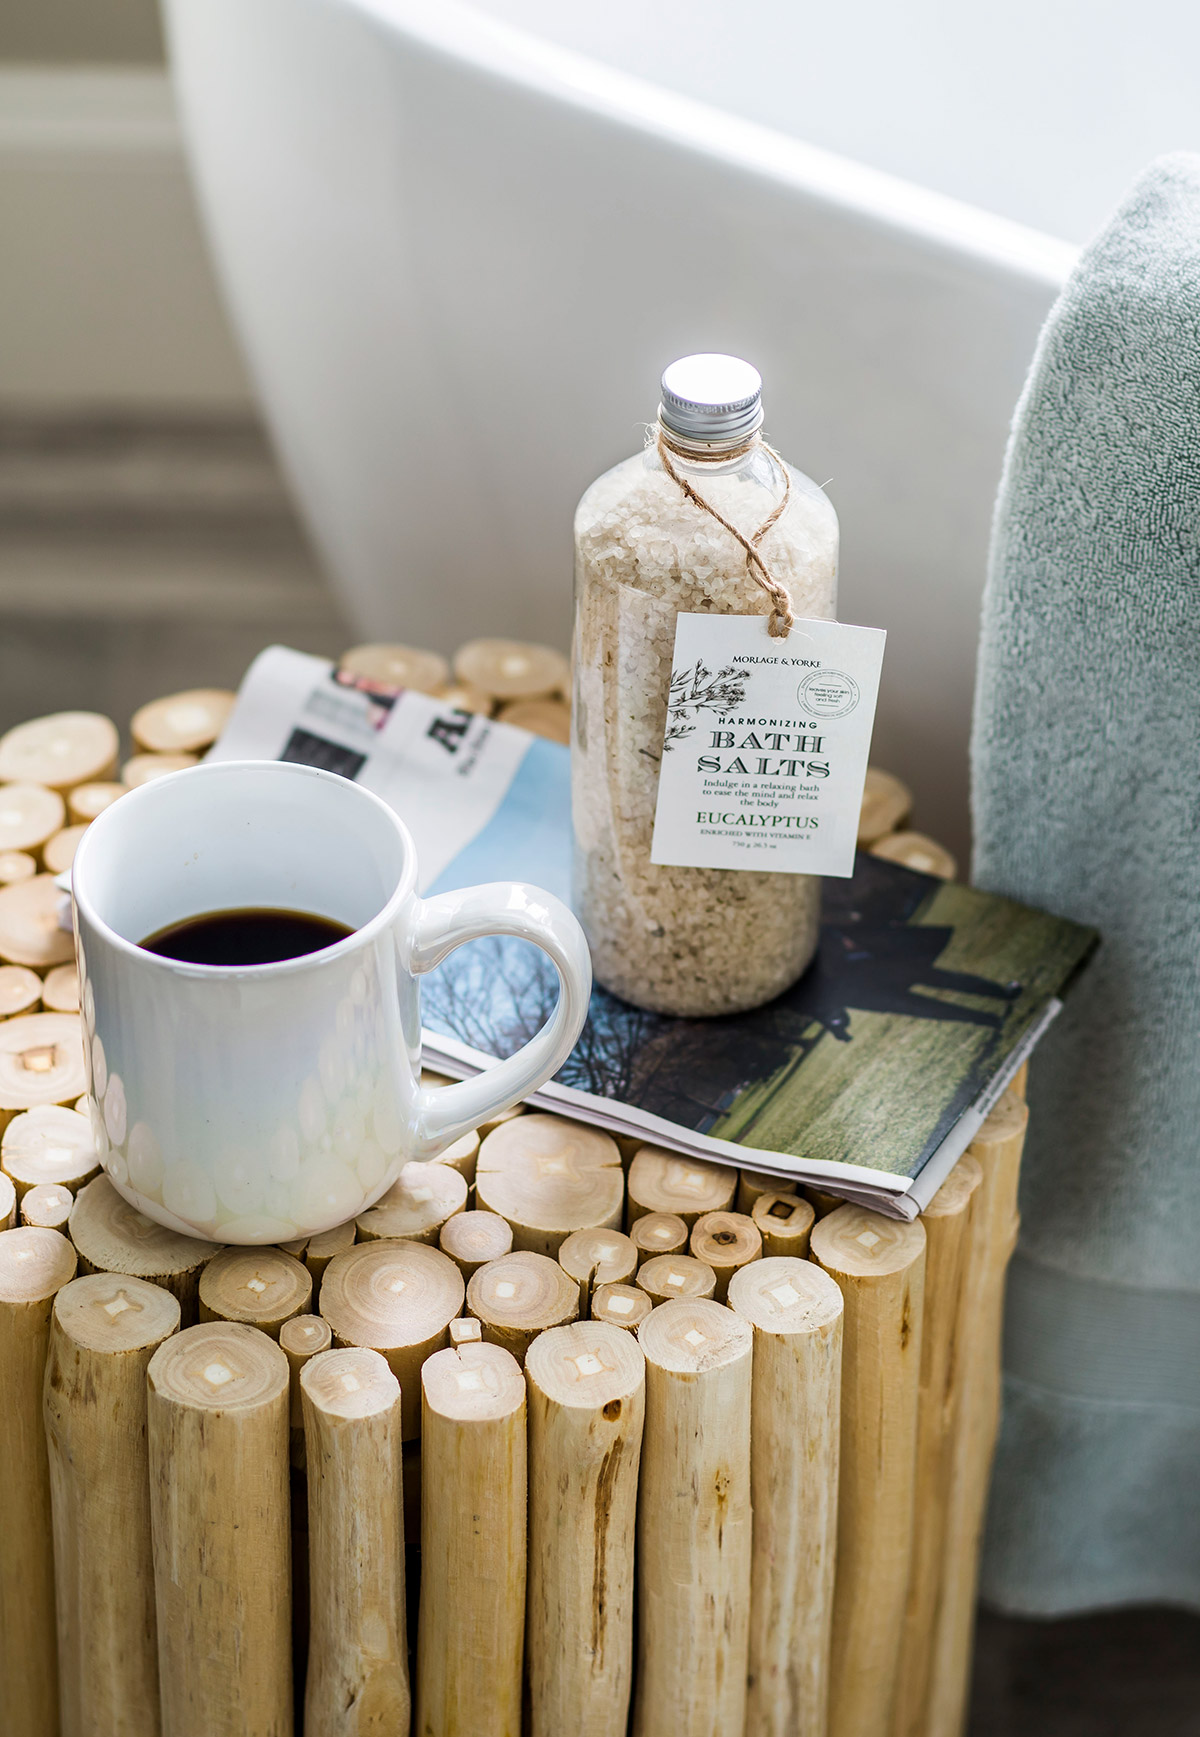 Wood stool in master bathroom with bath salts, a magazine, and a cup of coffee